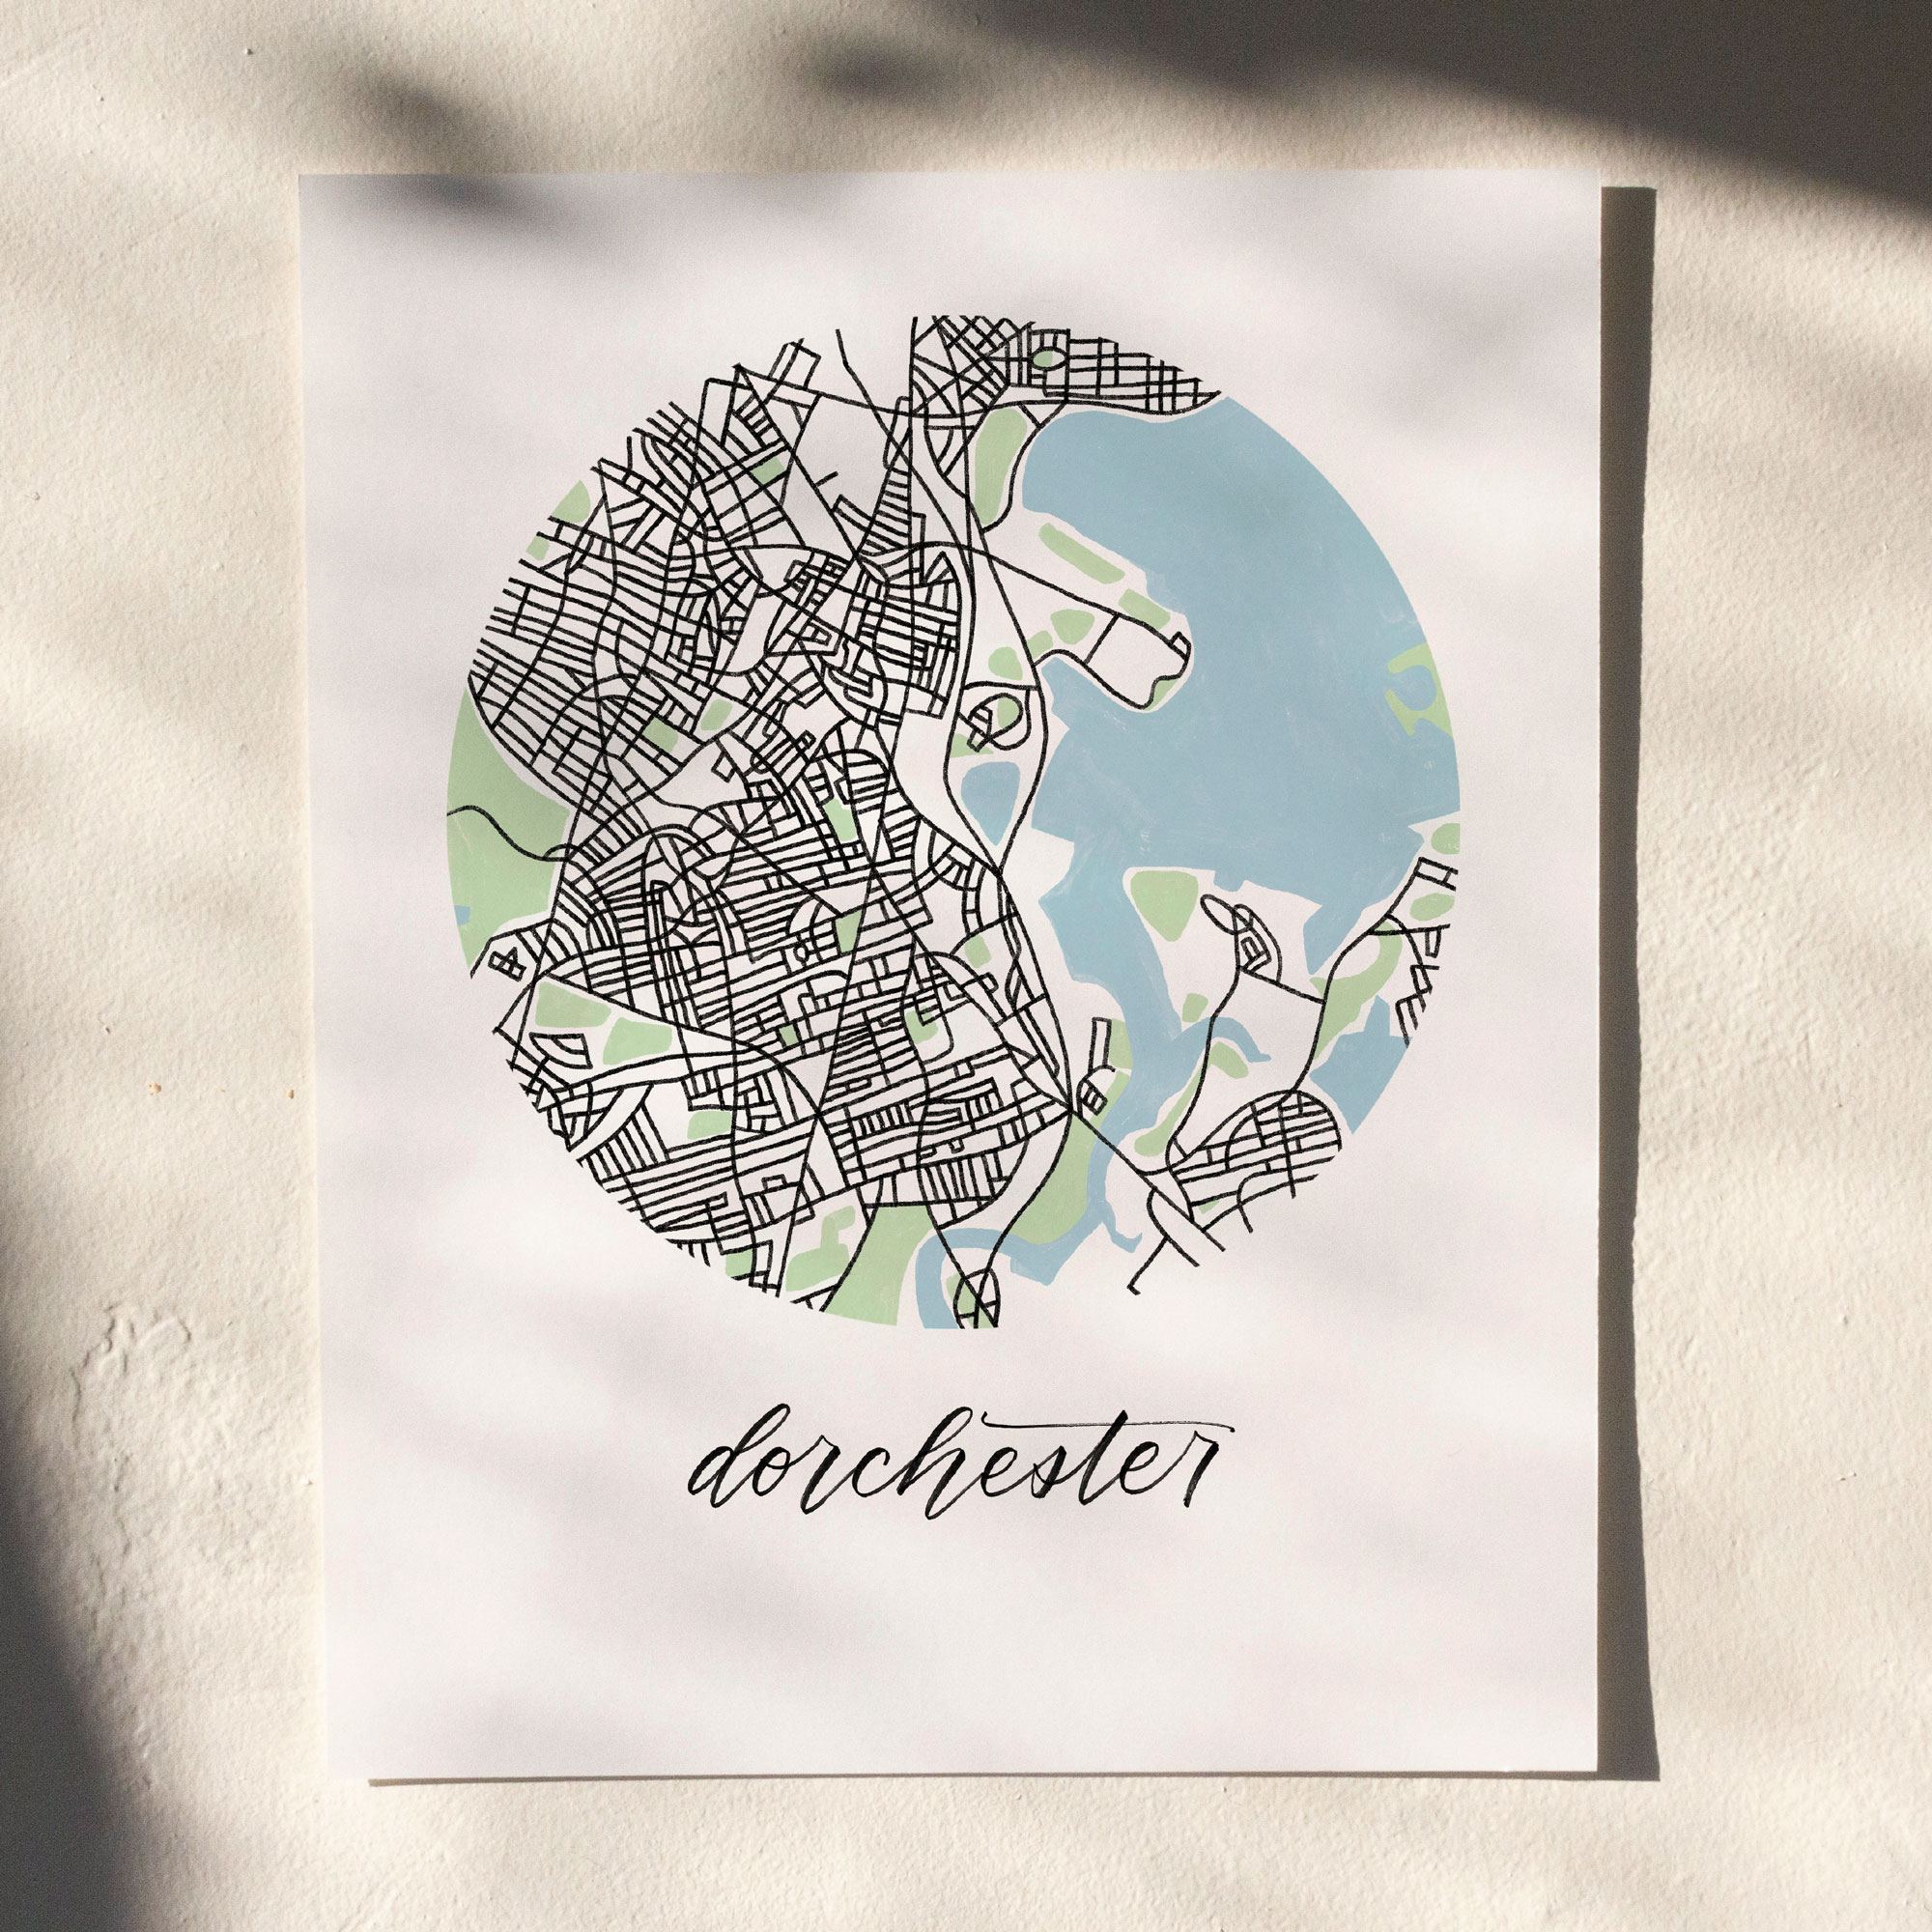 Dorchester, Boston Map Print hanging on white wall with leaf shadows across the image